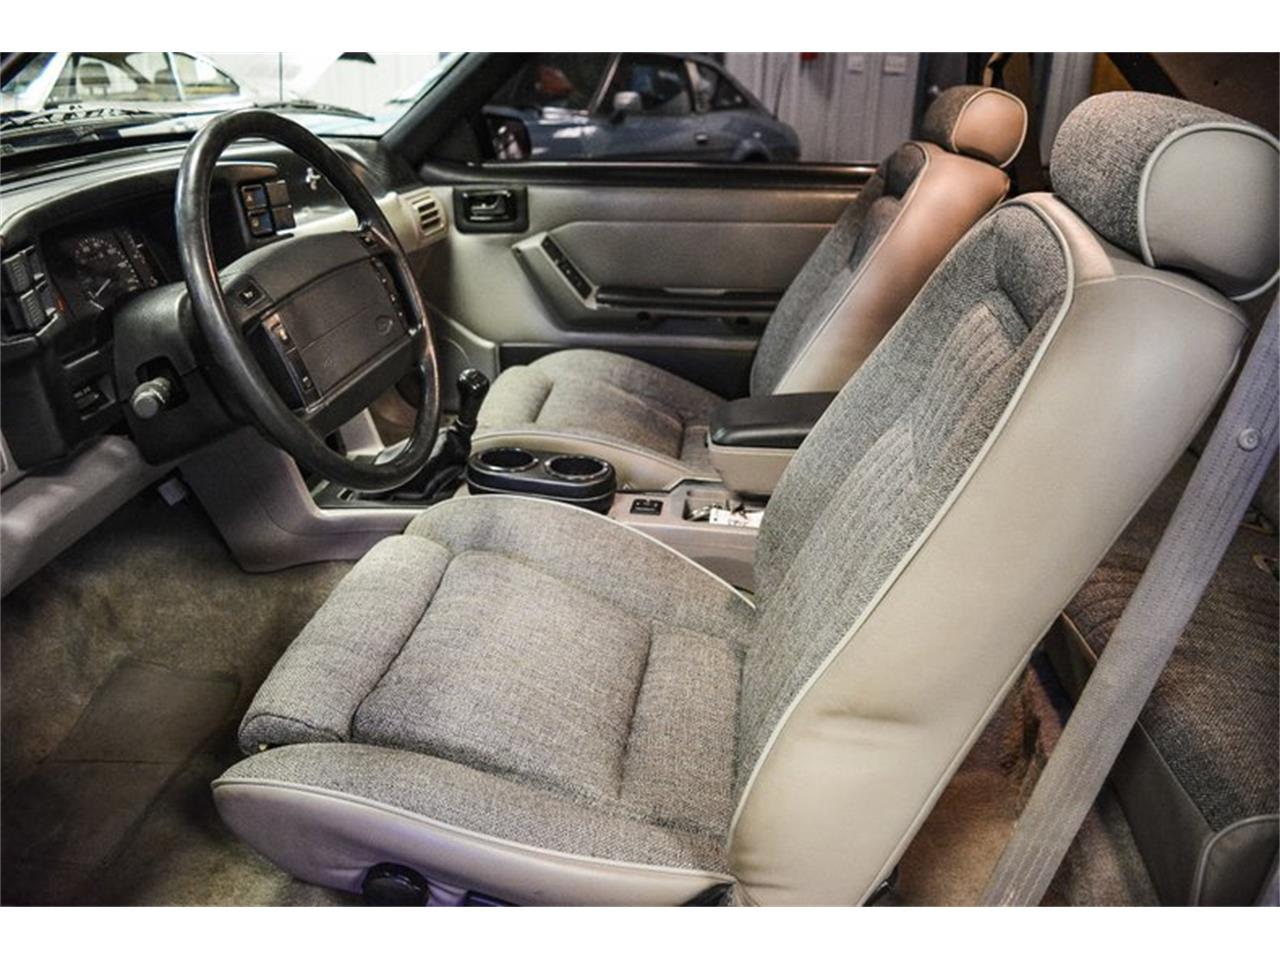 Large Picture of '91 Mustang located in Texas Offered by Classic Car Liquidators - PNVK